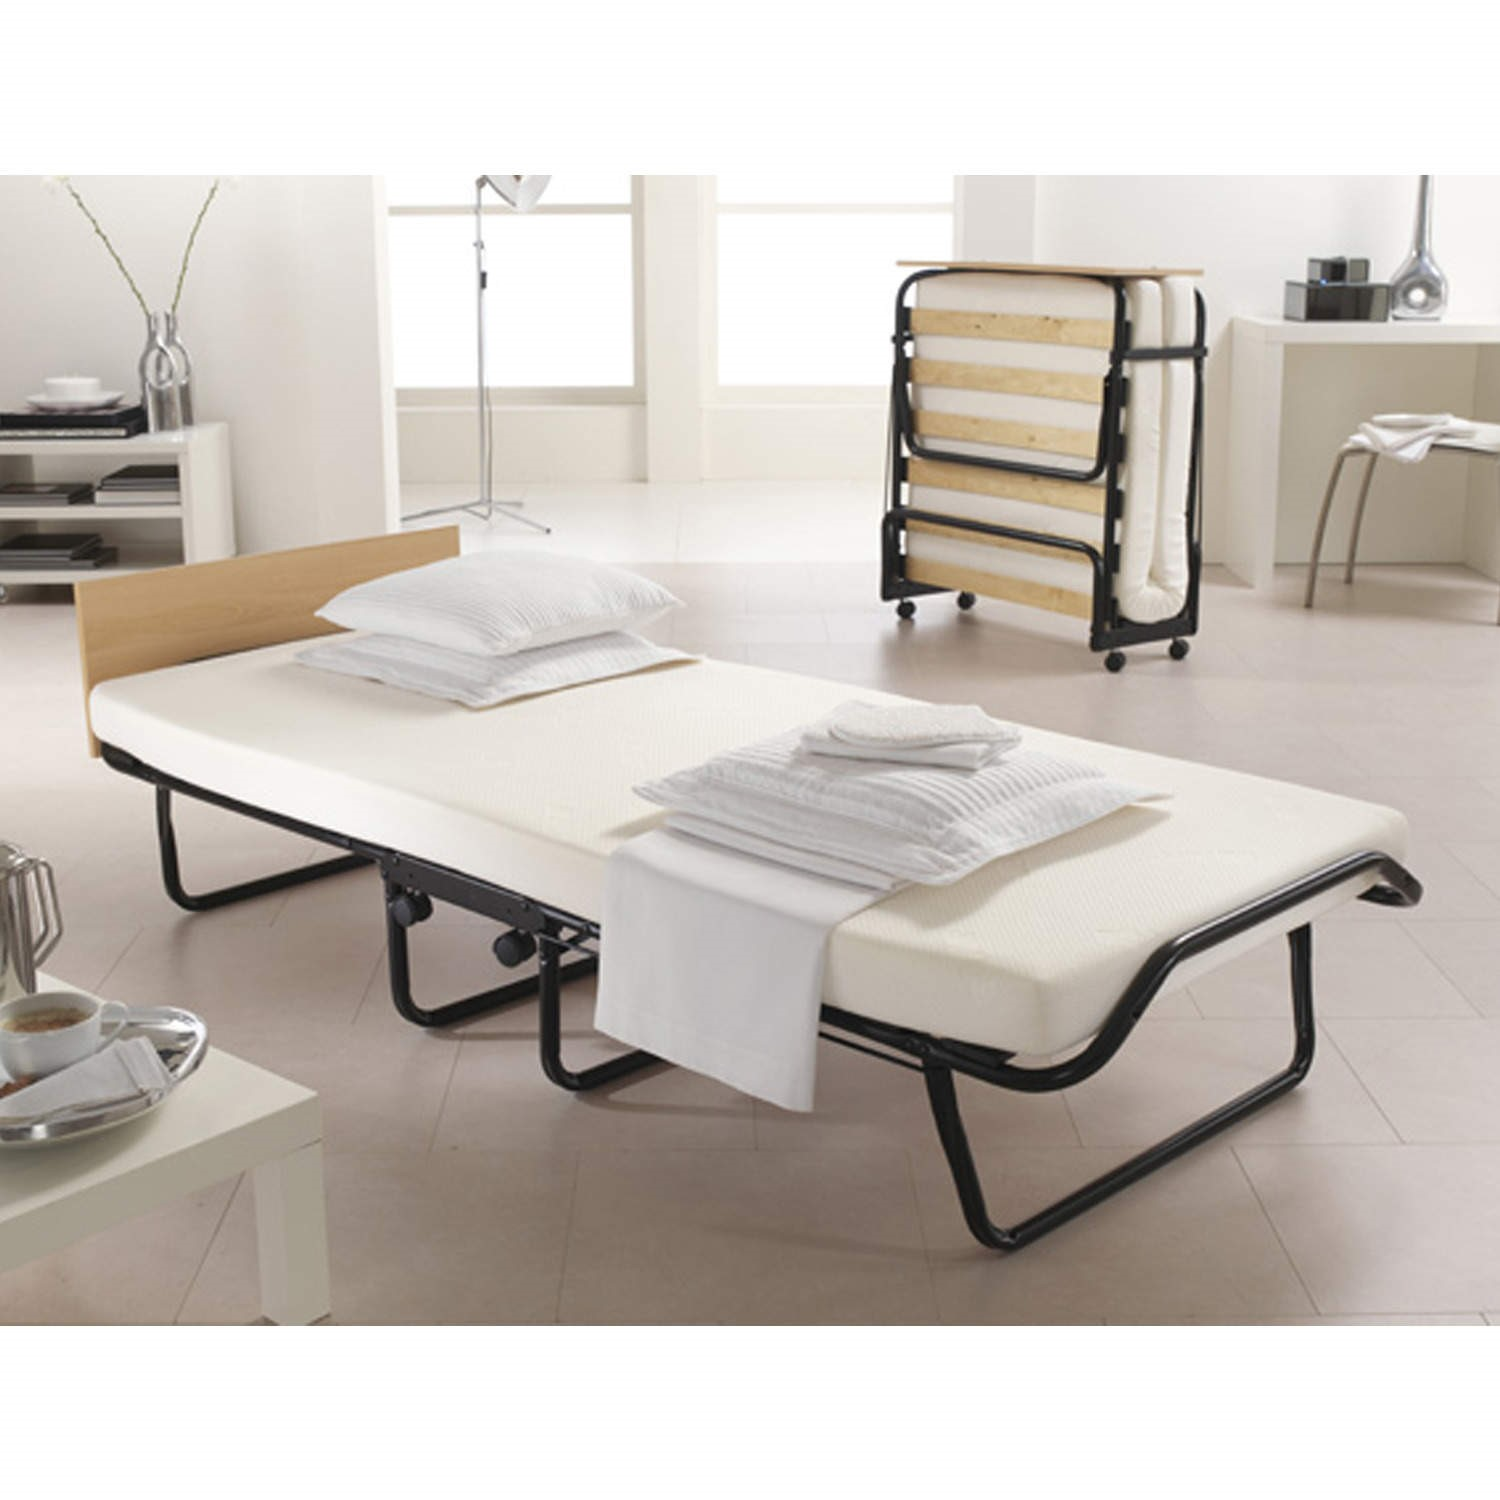 - Jay-Be Impression Memory Foam Folding Single Guest Bed With Cover  Furniture123